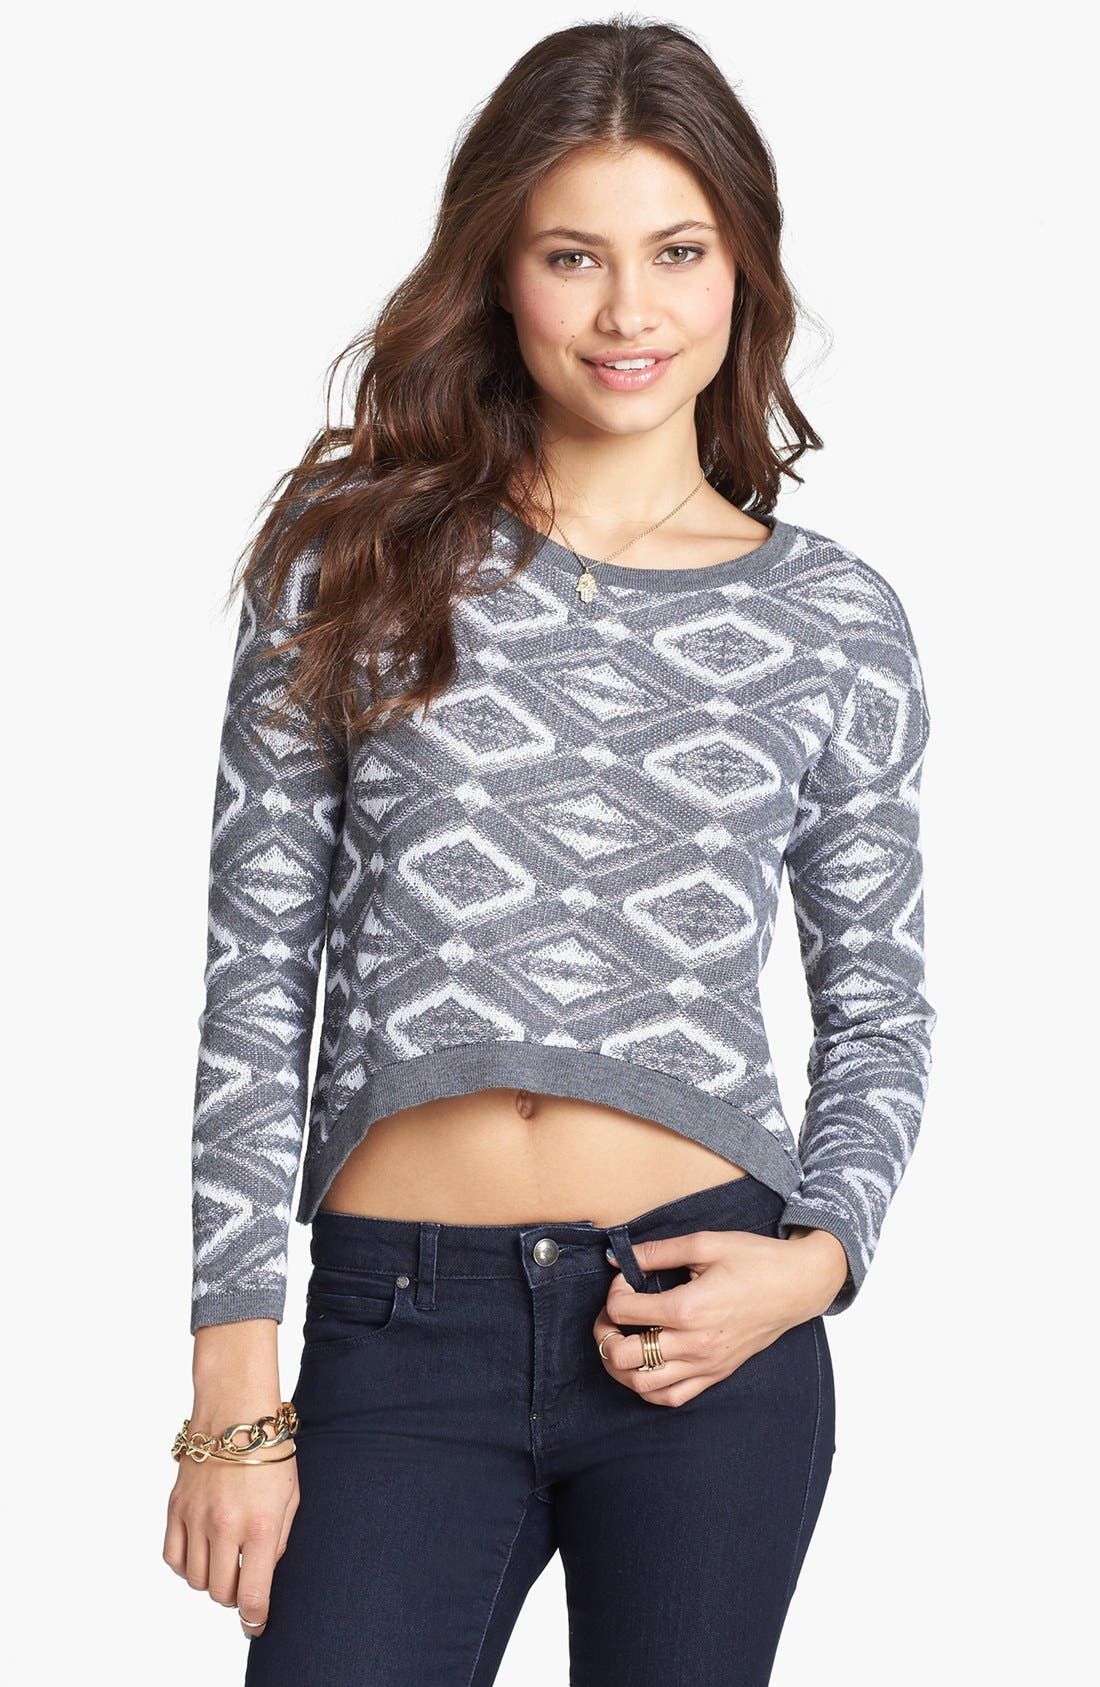 Alternate Image 1 Selected - Cotton Emporium Geometric Sweater (Juniors)